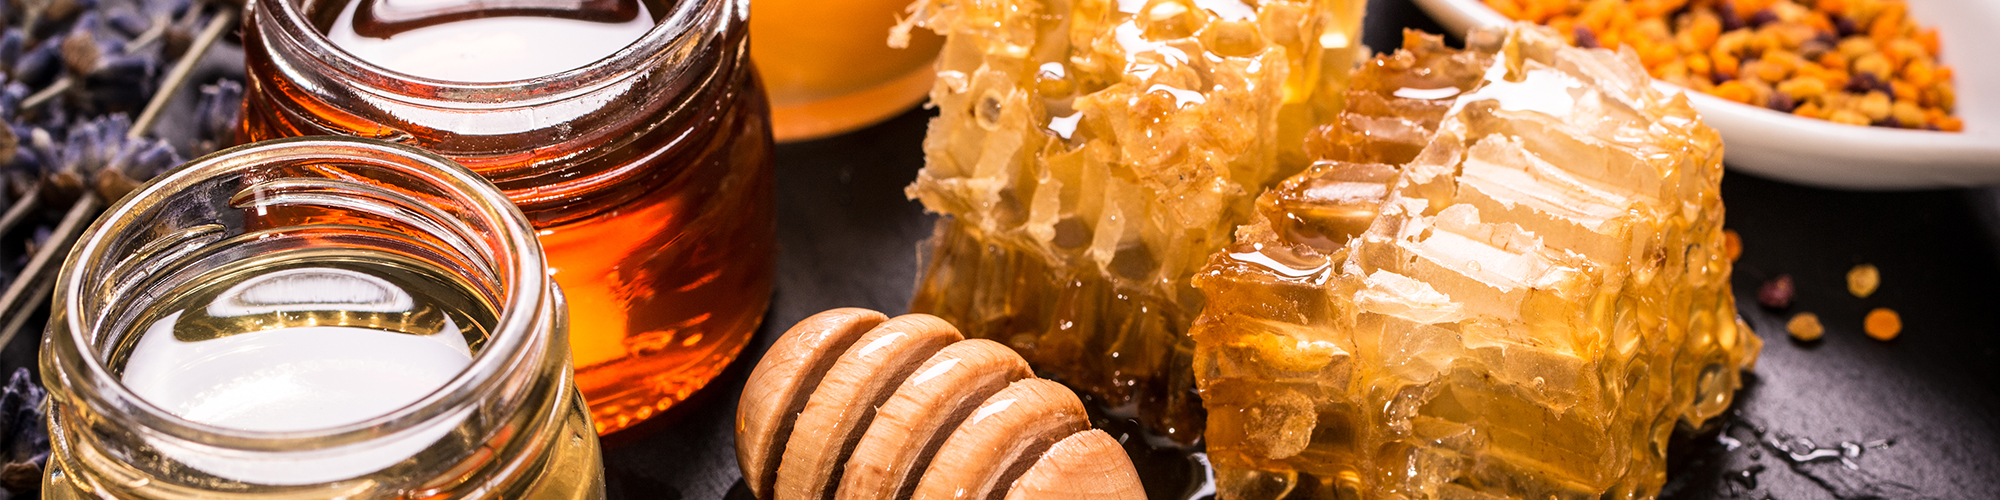 Honeycomb and Jars of Honey